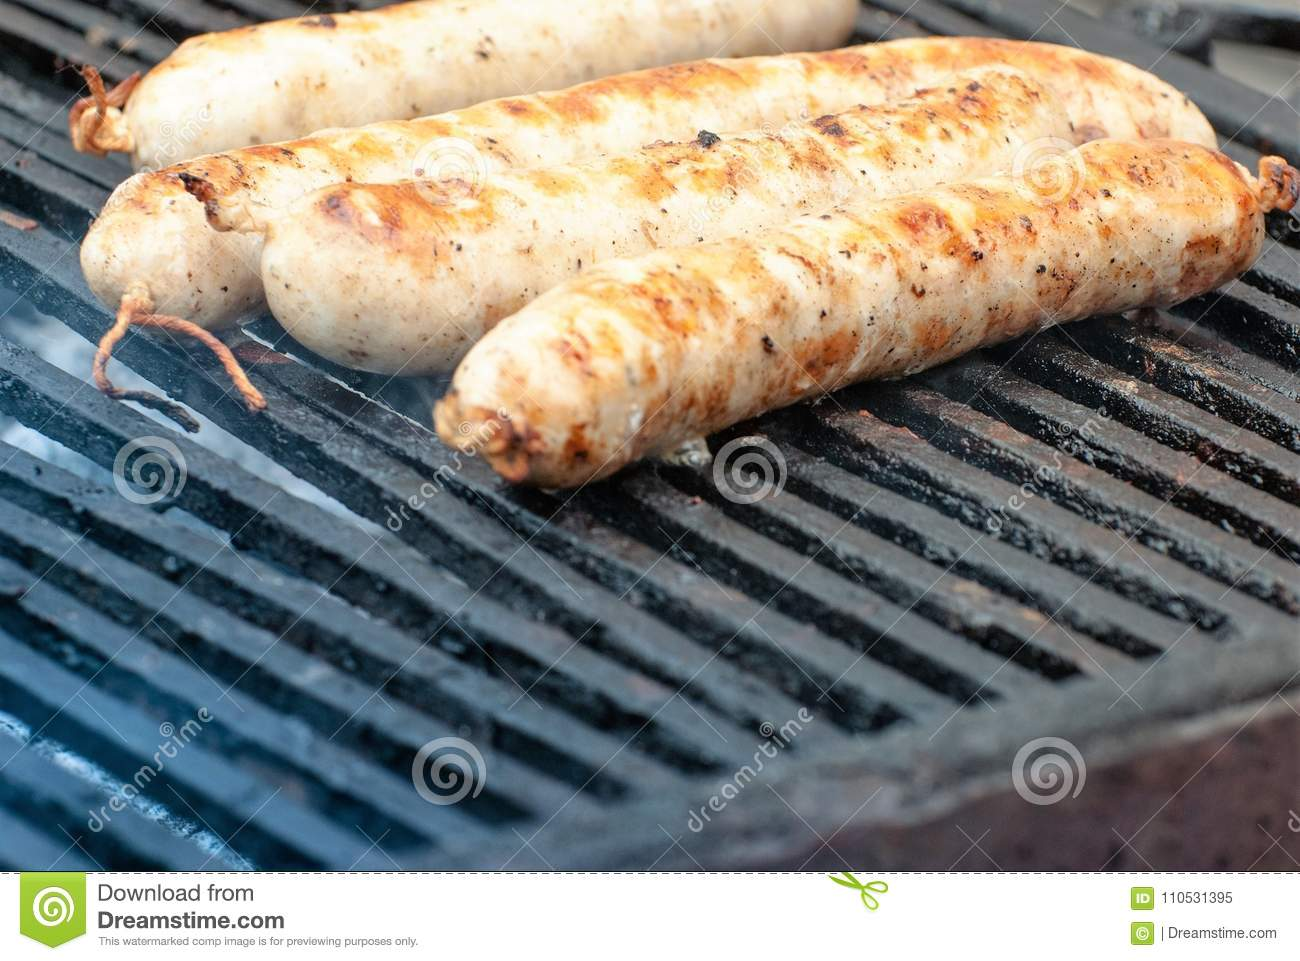 Hot sausages on a barbecue with fragrant smoke.